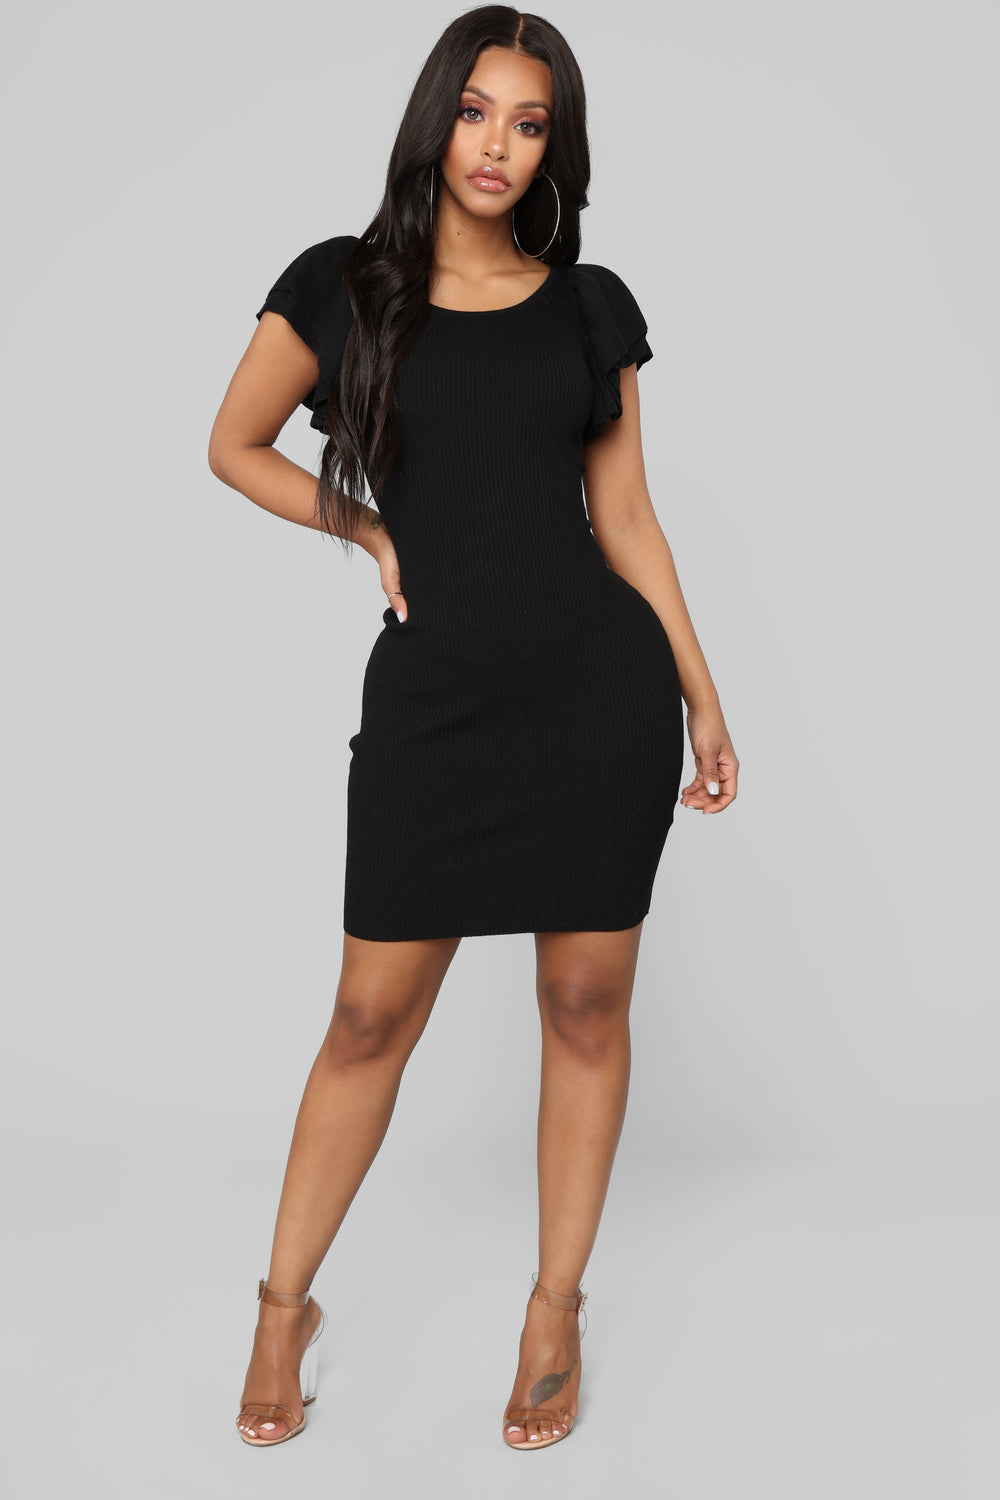 Maria Ruffle Sweater Dress - Black